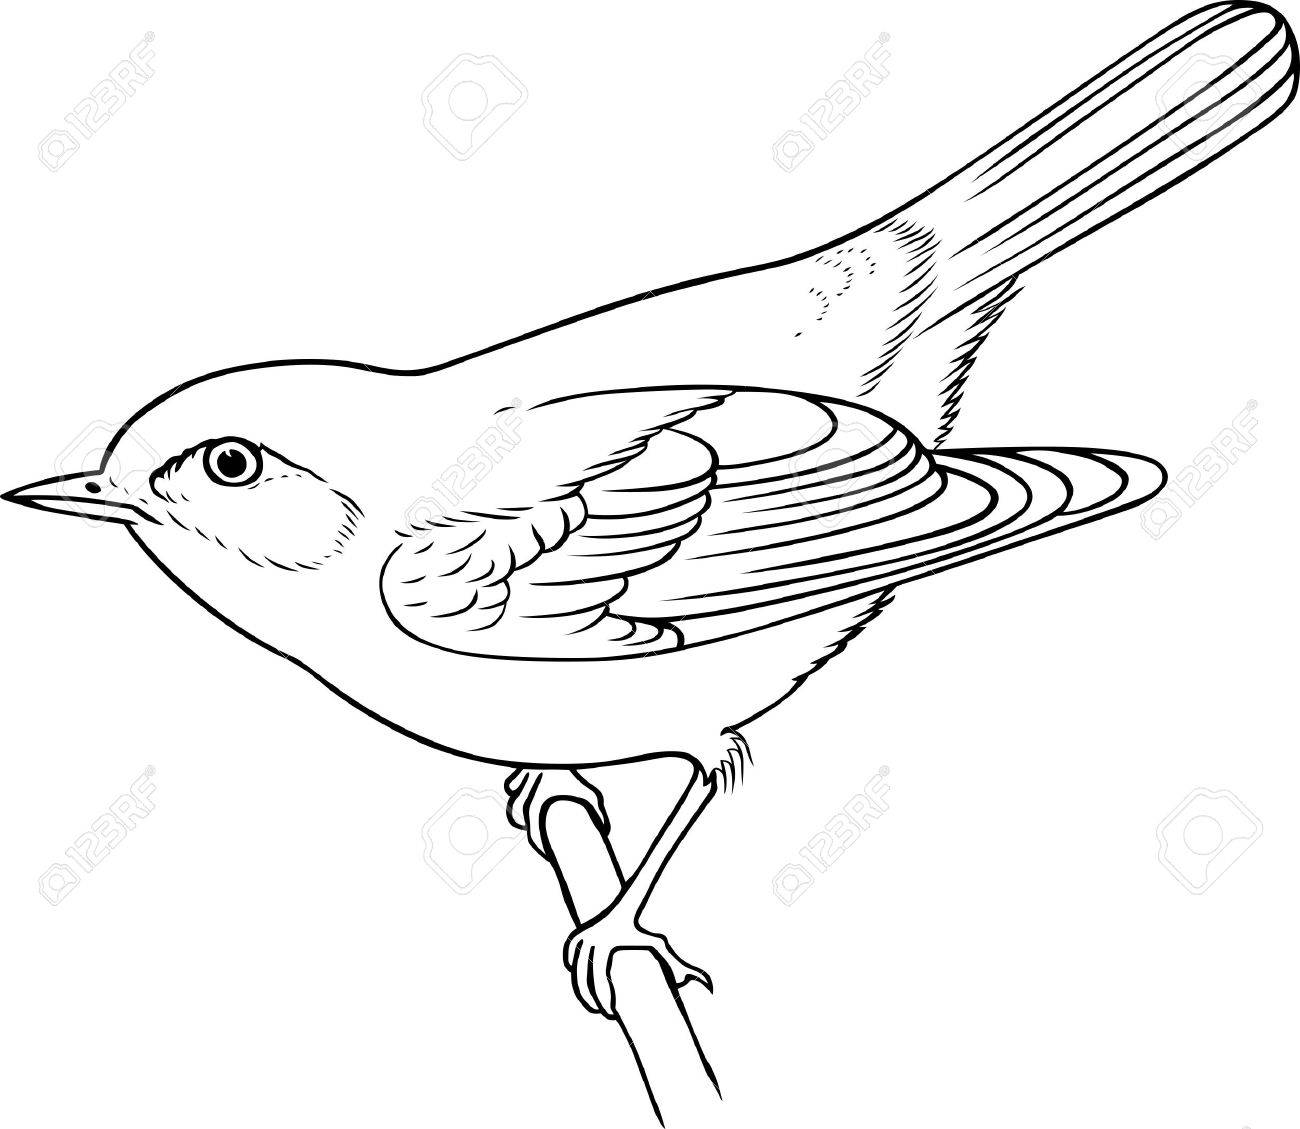 Bird on the branch on white background Stock Vector - 10300439